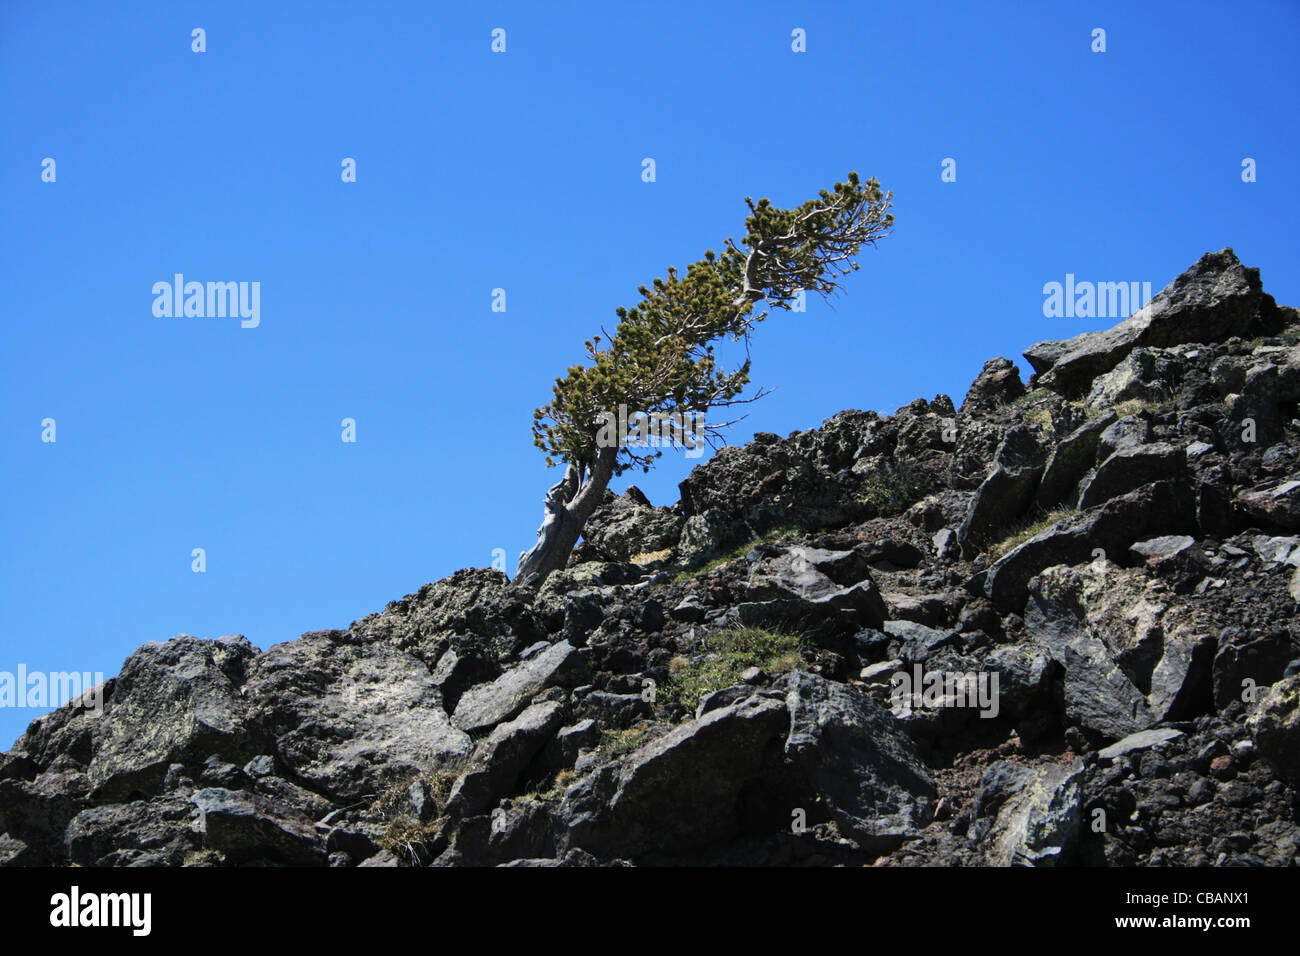 alpine pine tree above 11,000 feet on the San Francisco Peaks bent over by the wind and harsh weather - Stock Image